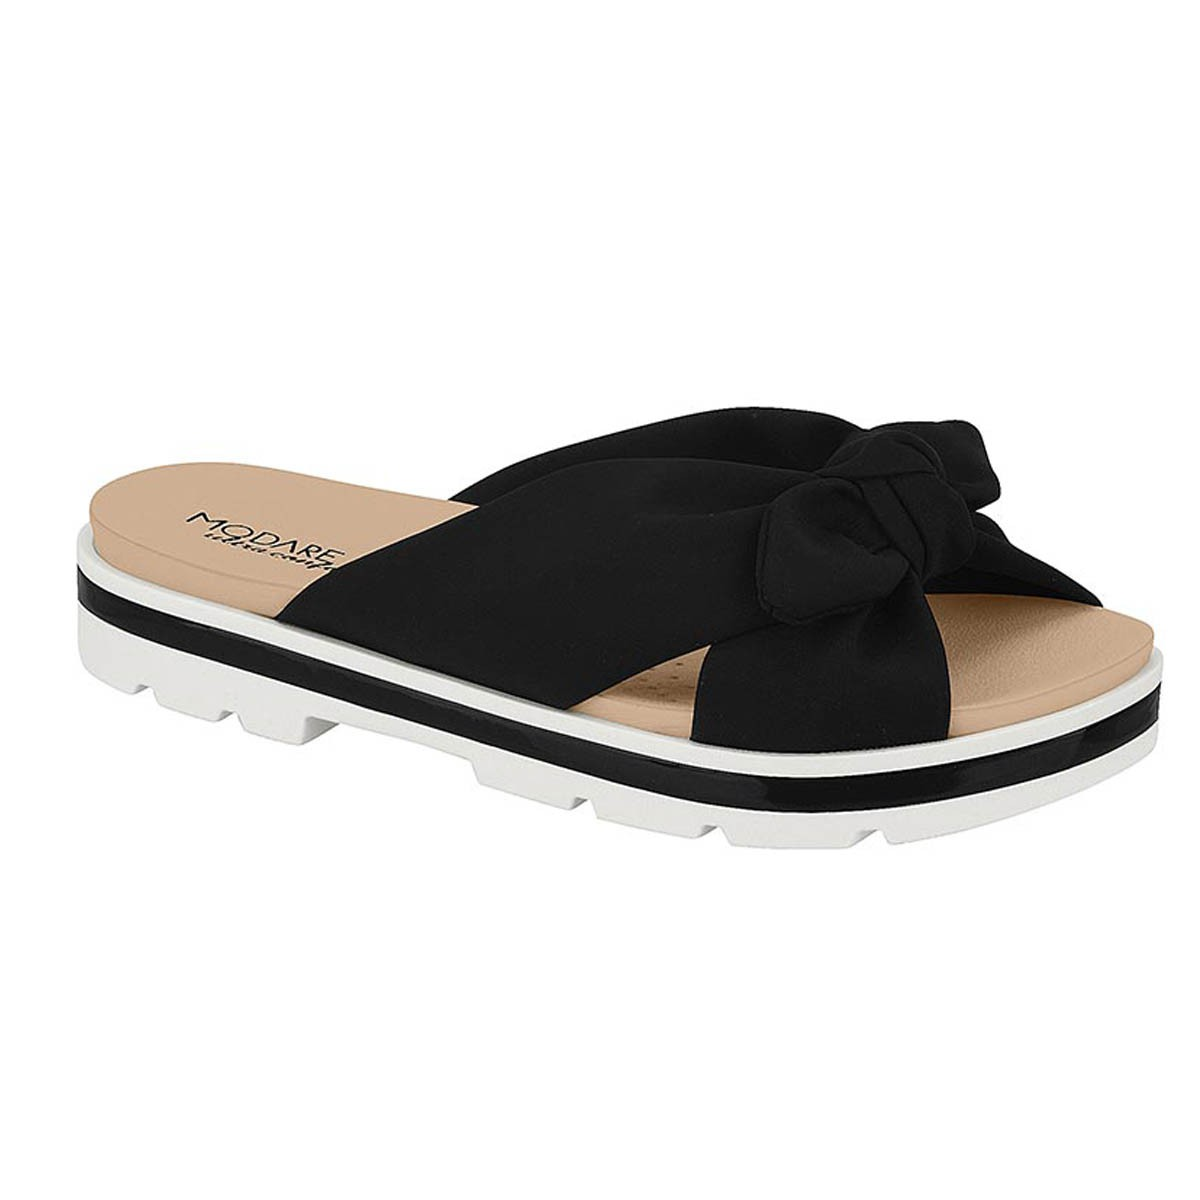 Chinelo Modare feminino com top 7132.100 Ultraconforto